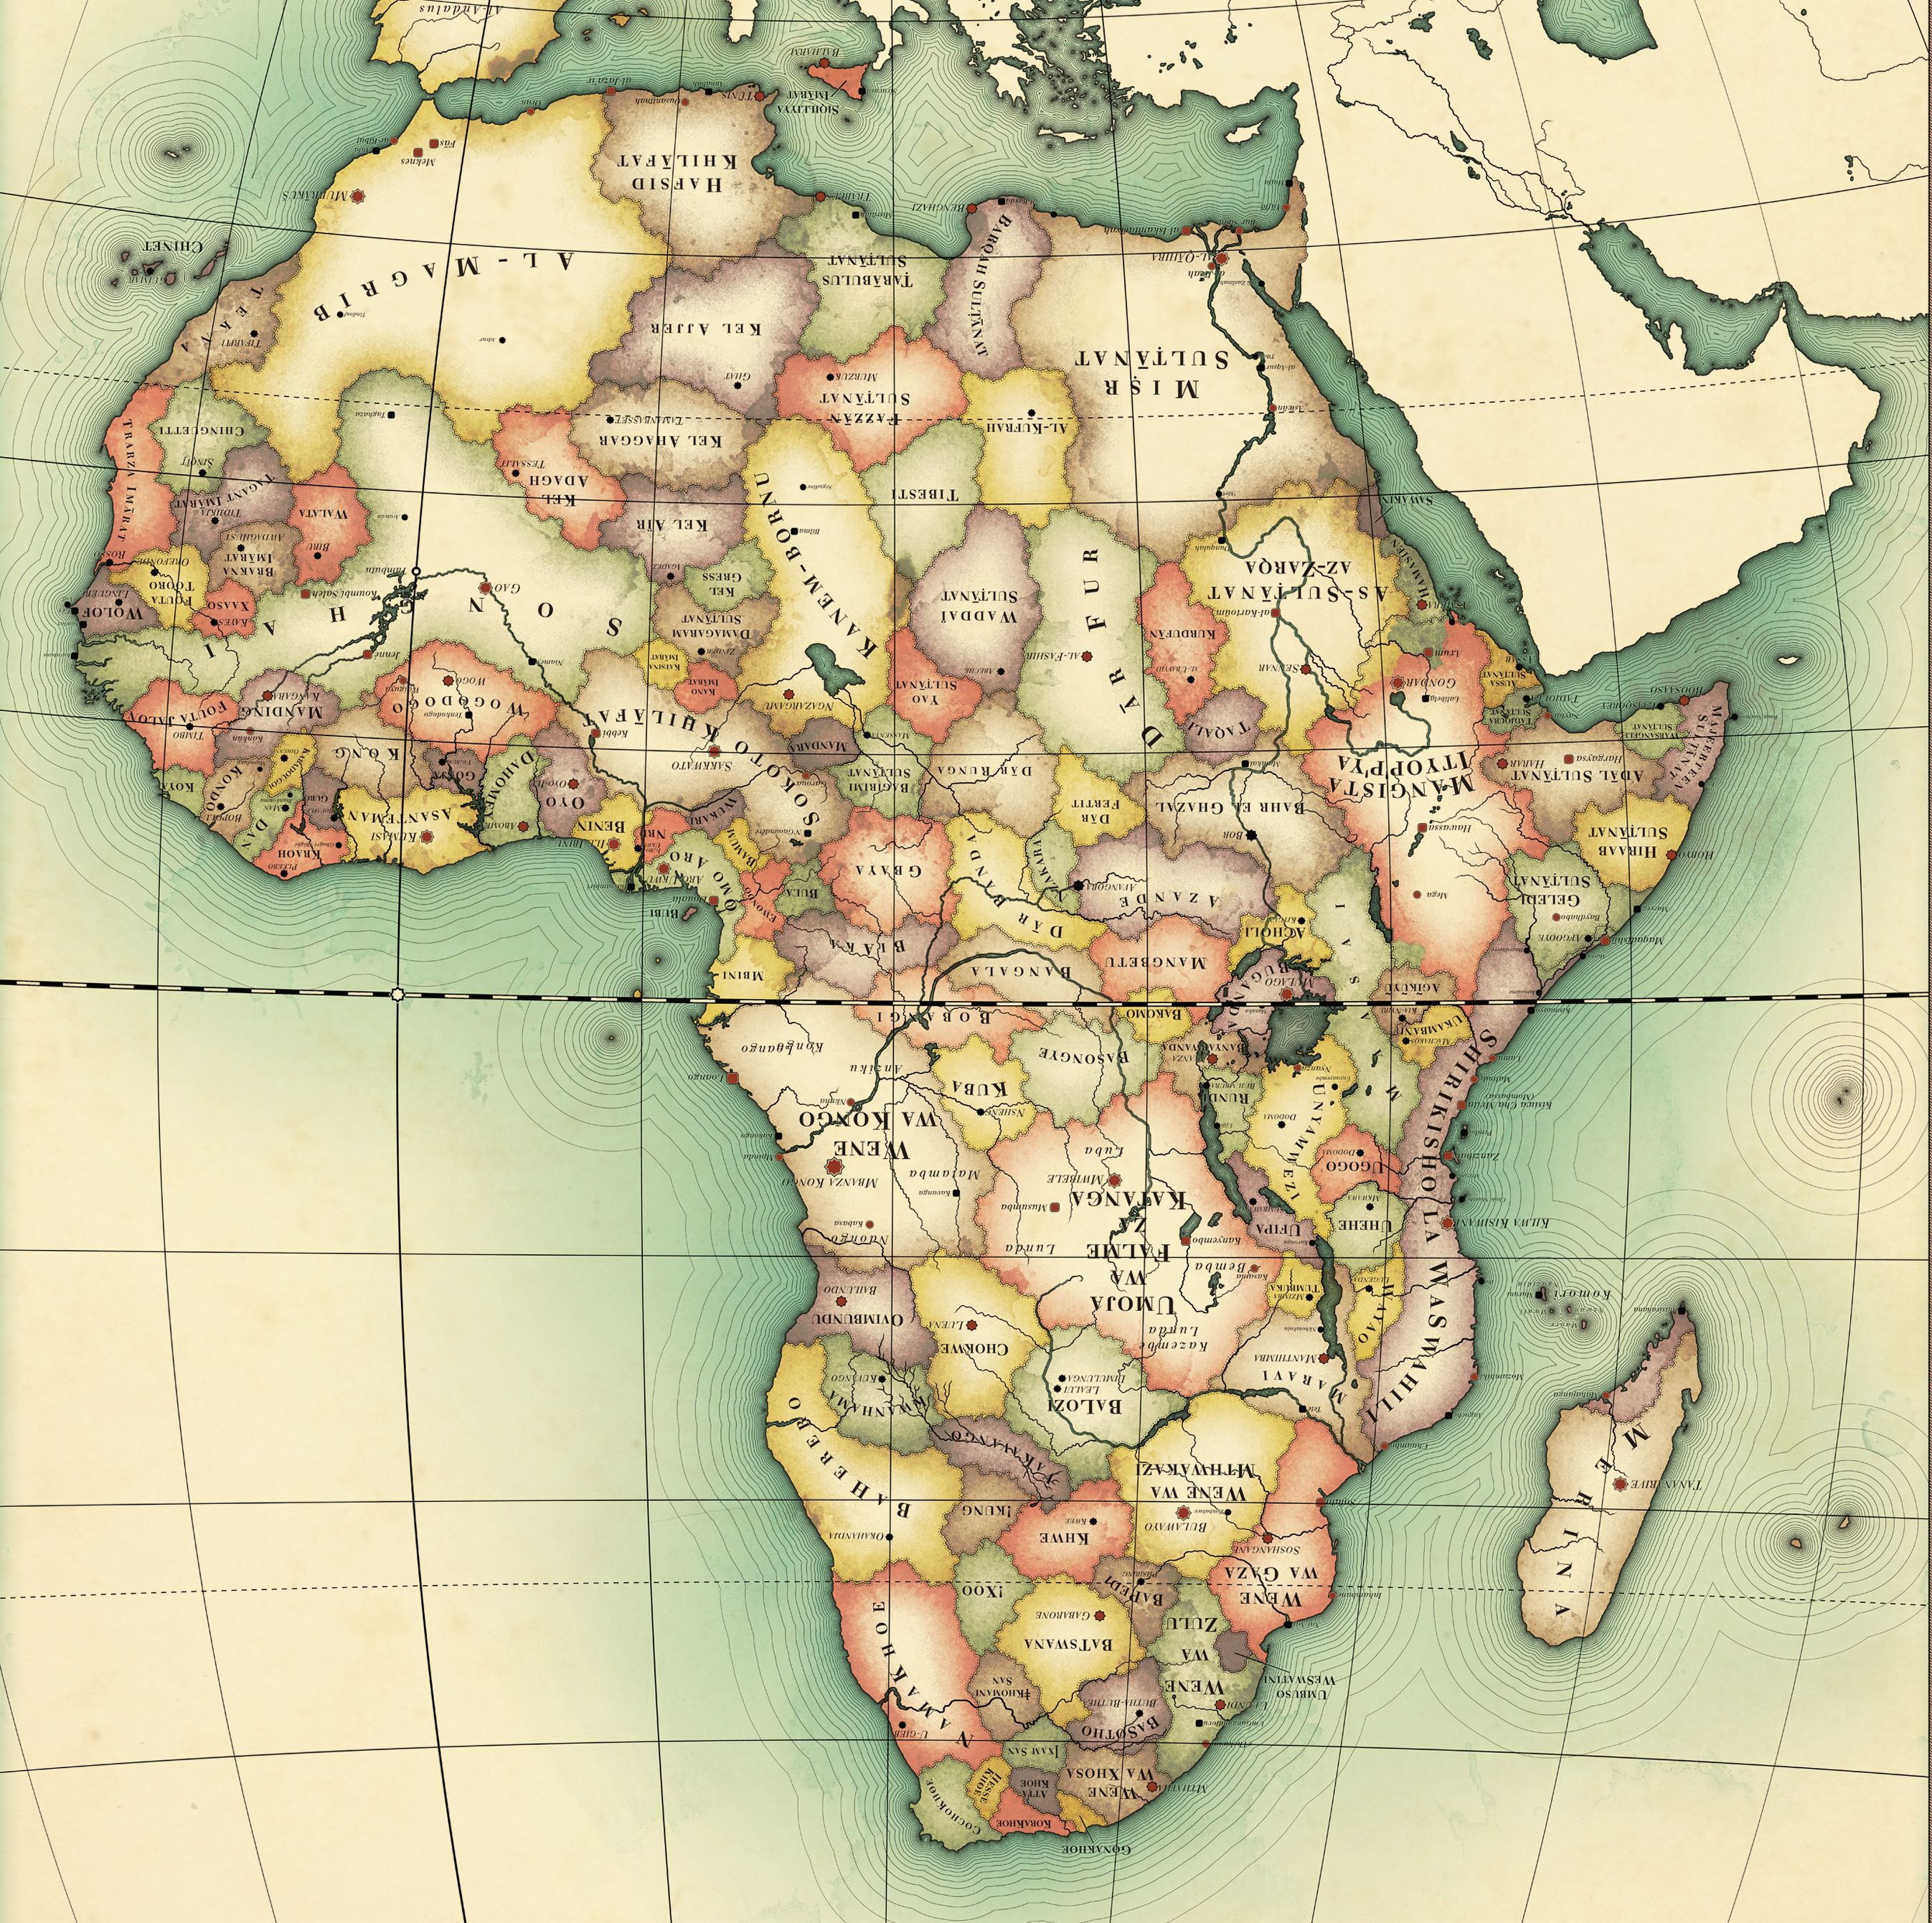 Africa, uncolonized: a detailed look at an alternate continent